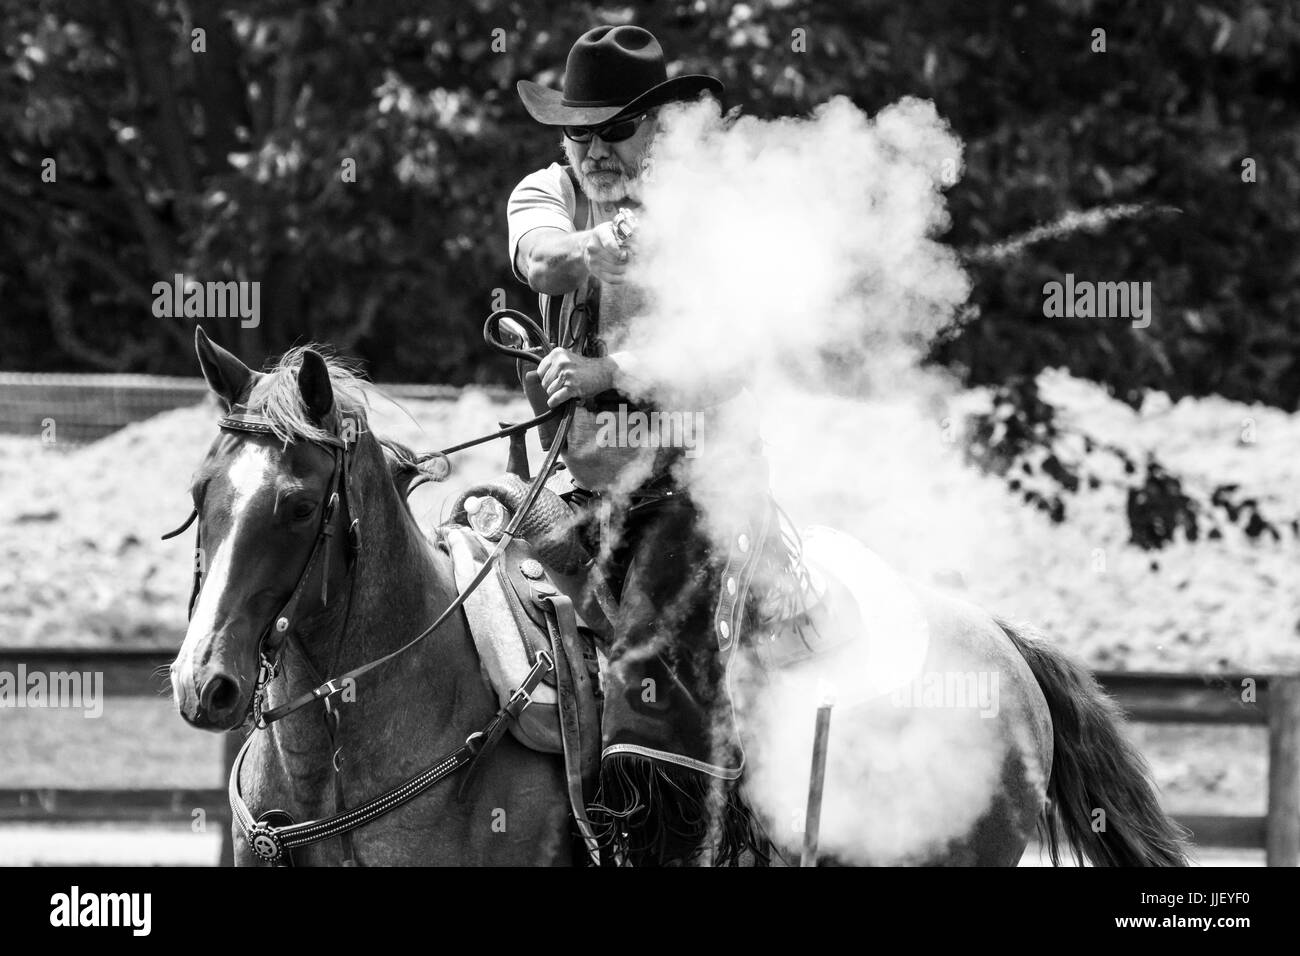 2017 Hudson Valley Gunslingers- Cowboy Mounted Shooting - Stock Image